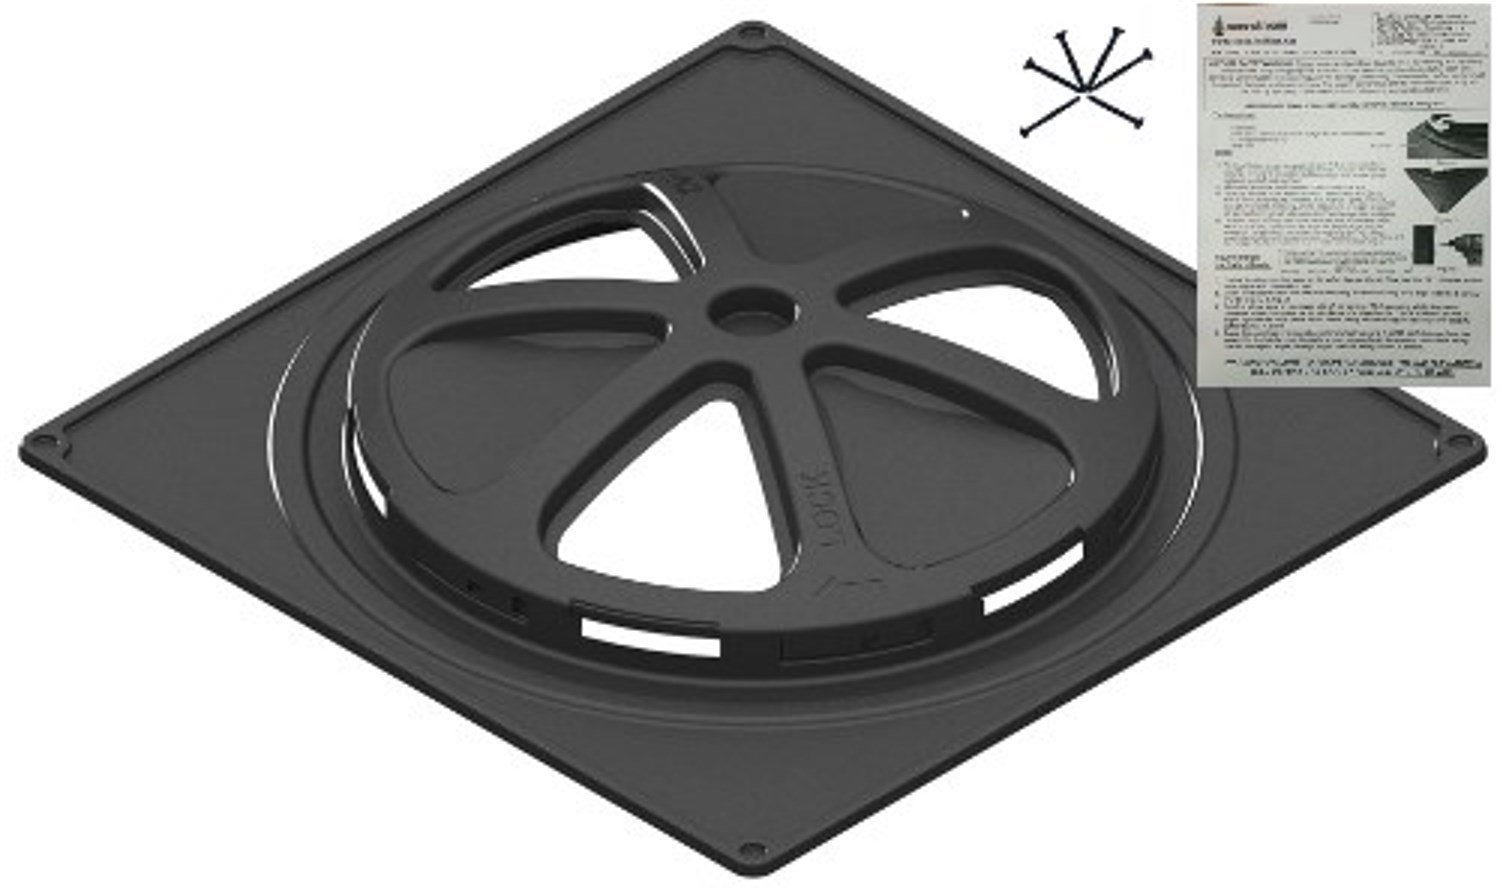 Septic Tank Riser Adapter Flange with Integral Safety Barrier